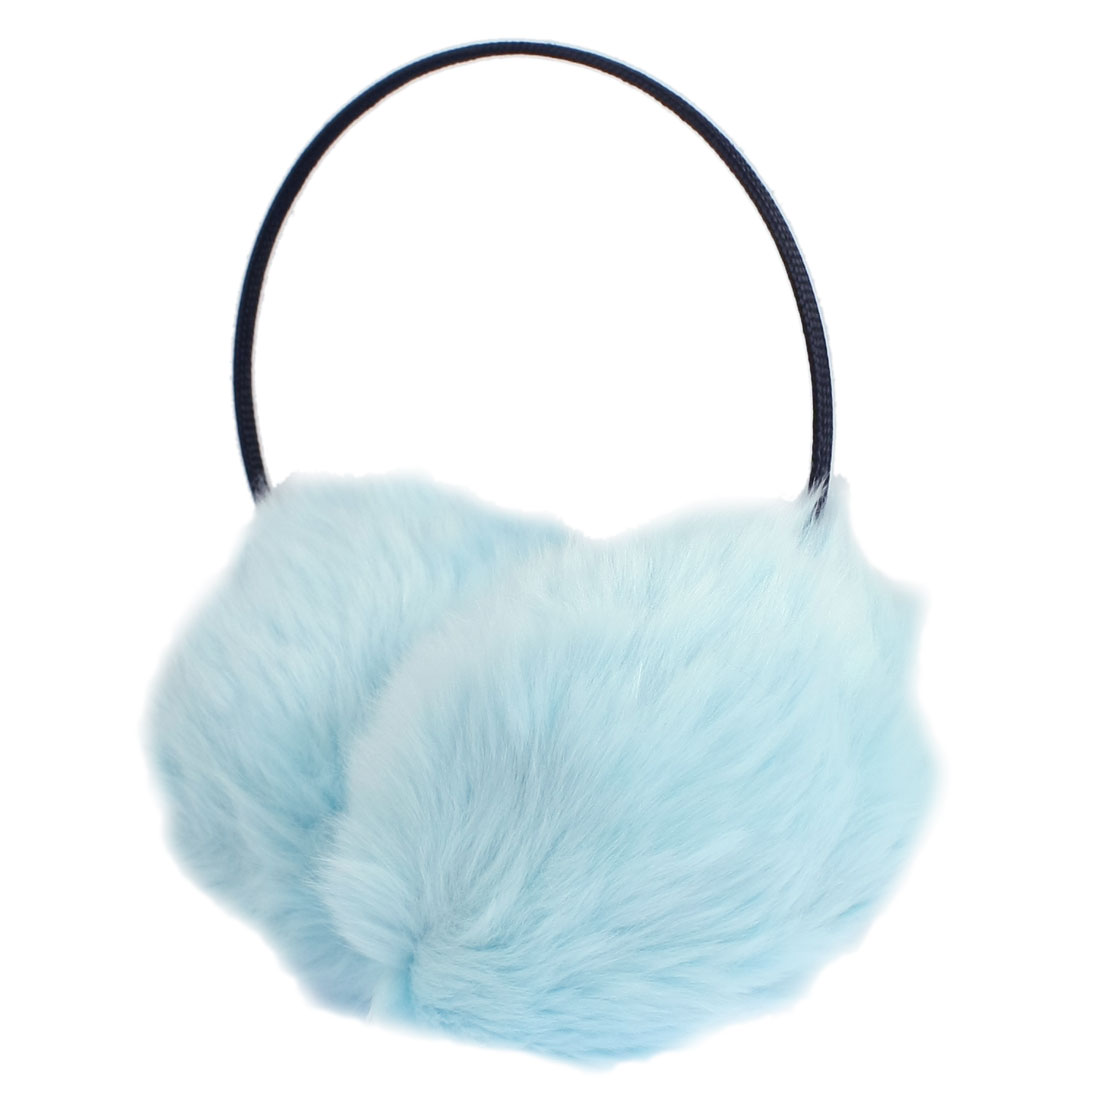 Lady Black Light Blue Winter Bow Frame Headwear Earmuffs Ear Covers